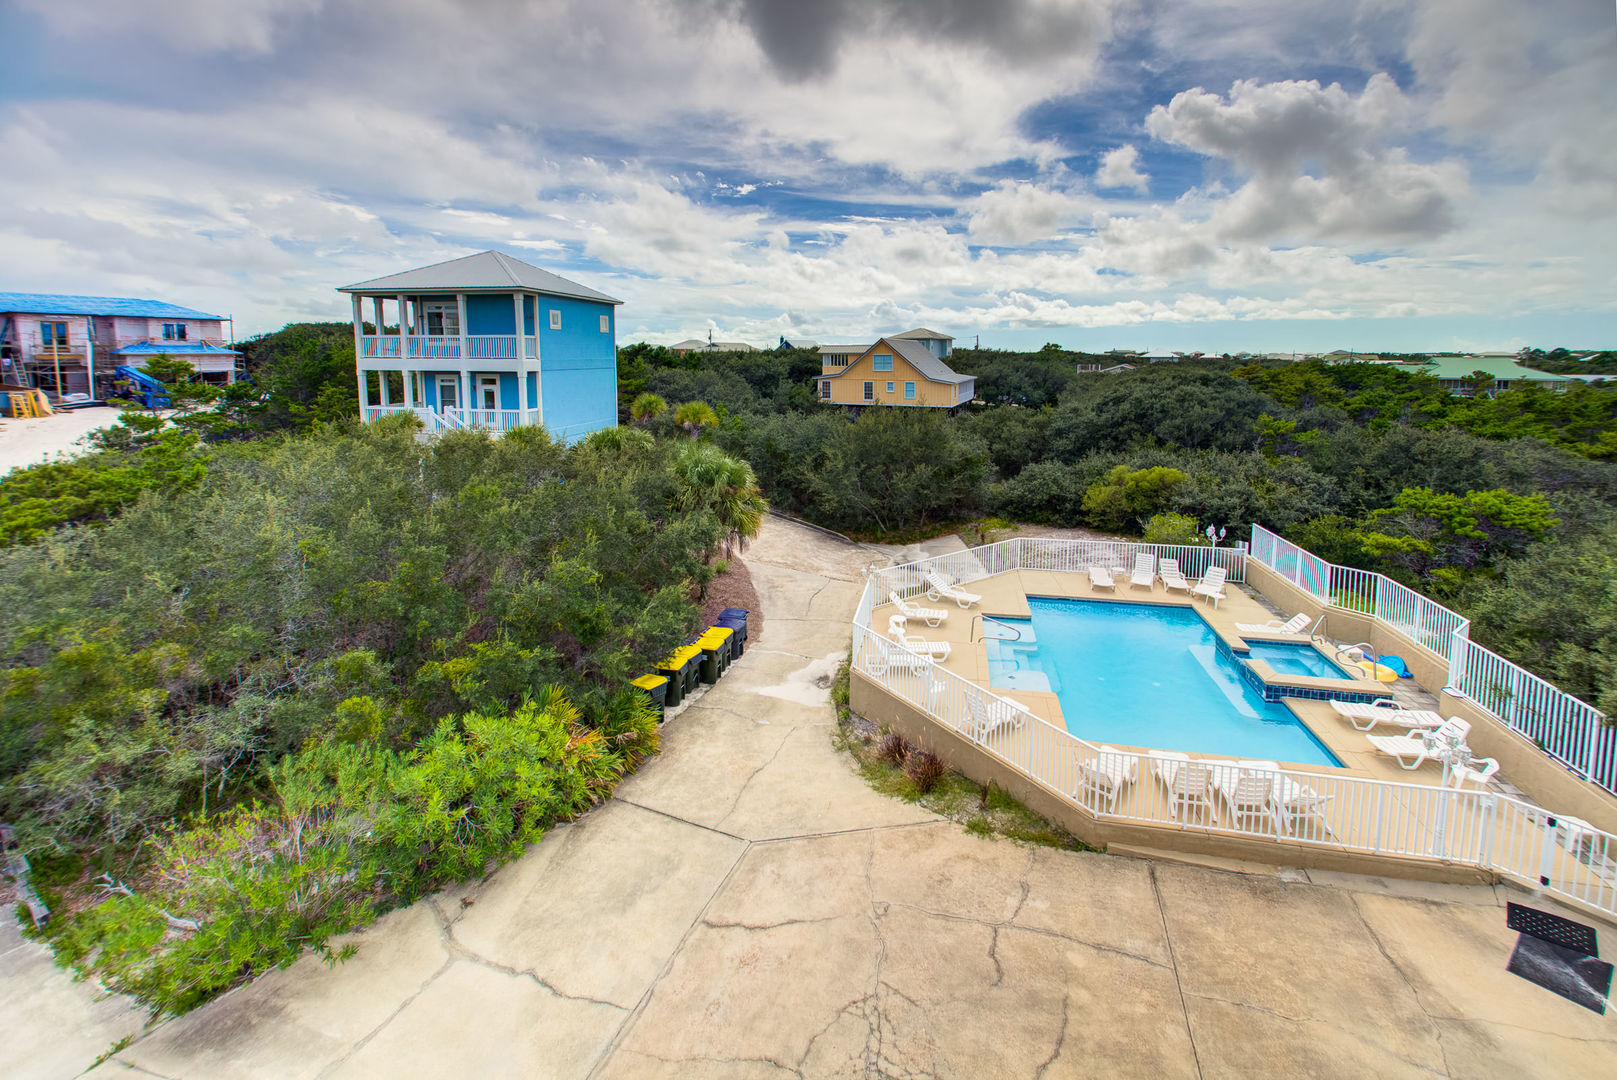 A Bird's Eye View of the Property and Pool.